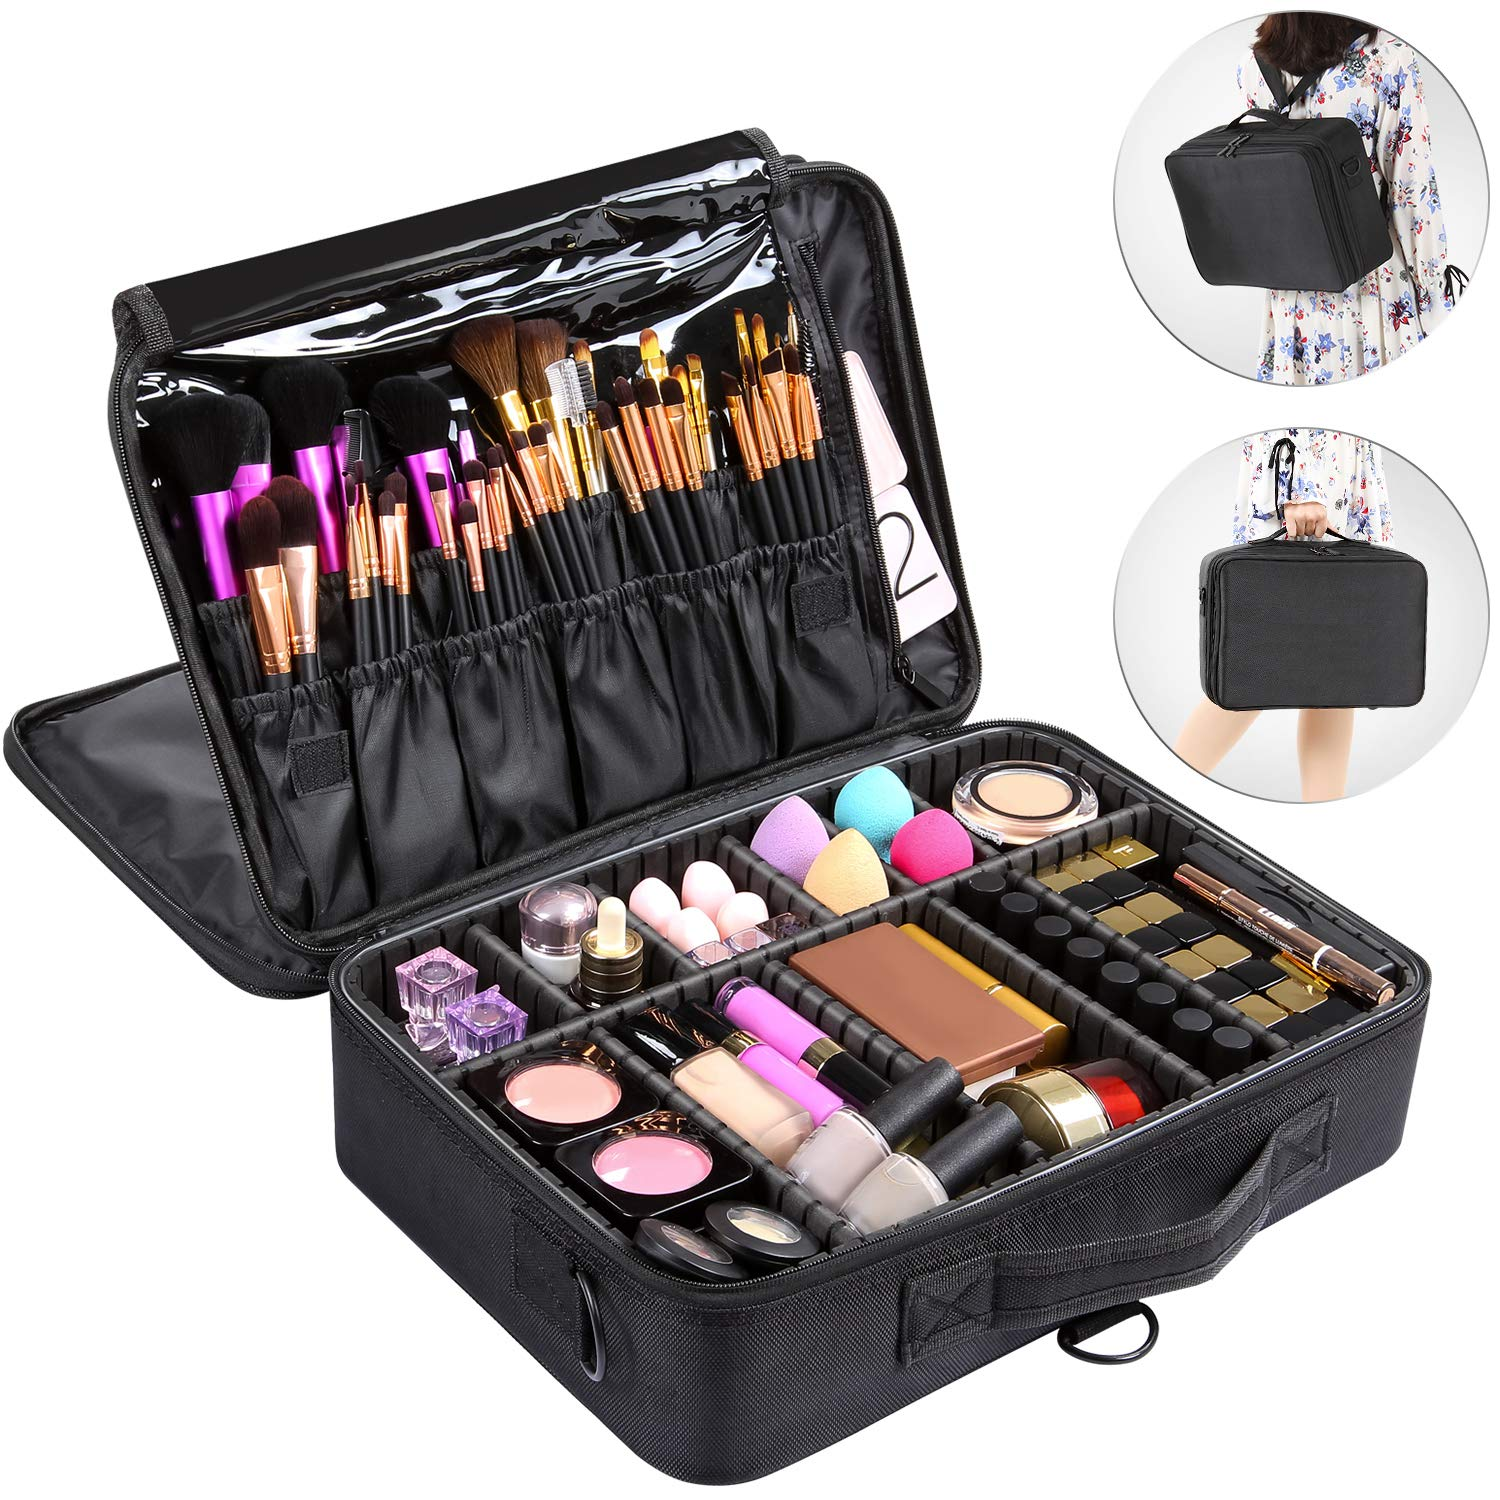 Valdler 3 Layer Large Makeup Bag Portable Travel Cosmetic Toile Organizer With Removable Divider Water Proof Multifunction 15.5inch Black